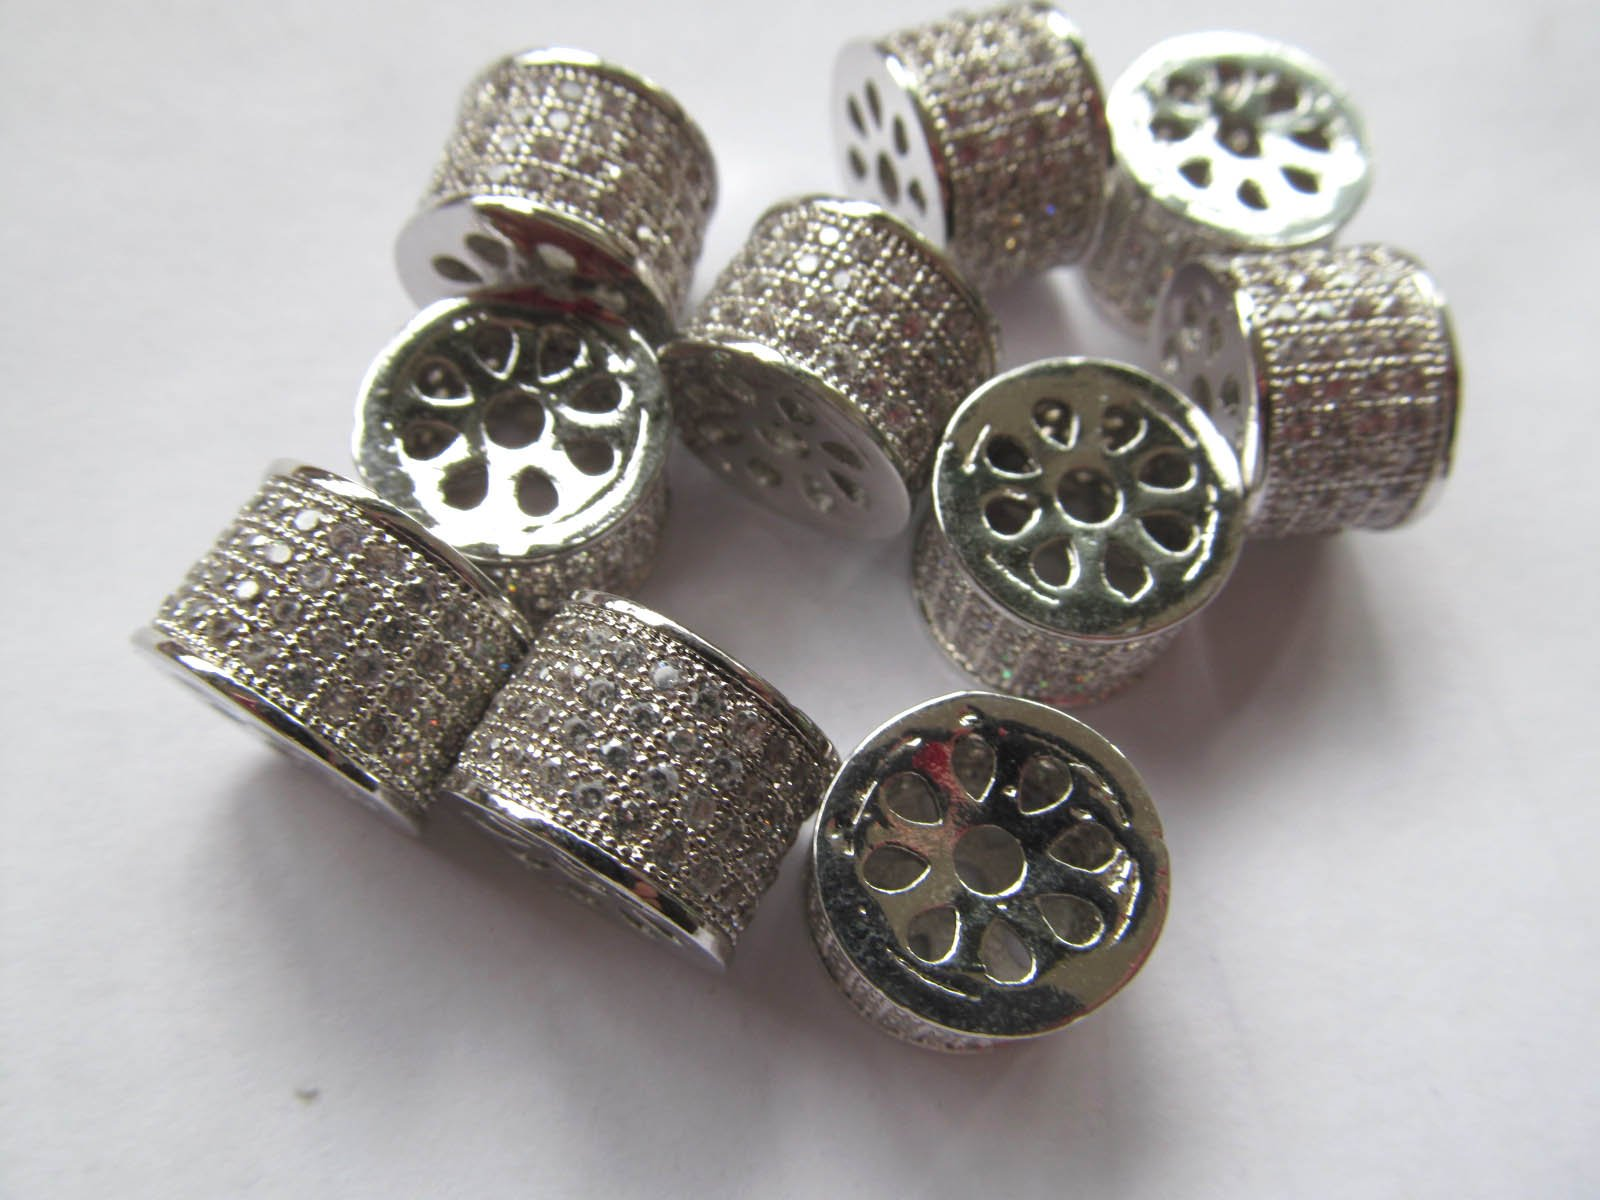 12pcs 9x13mm Micro Pave Cubic Zirconia Gunmetal Beads Spacer Beads Drum Tube Column Cubic Zirconia Pave Bead connector beads